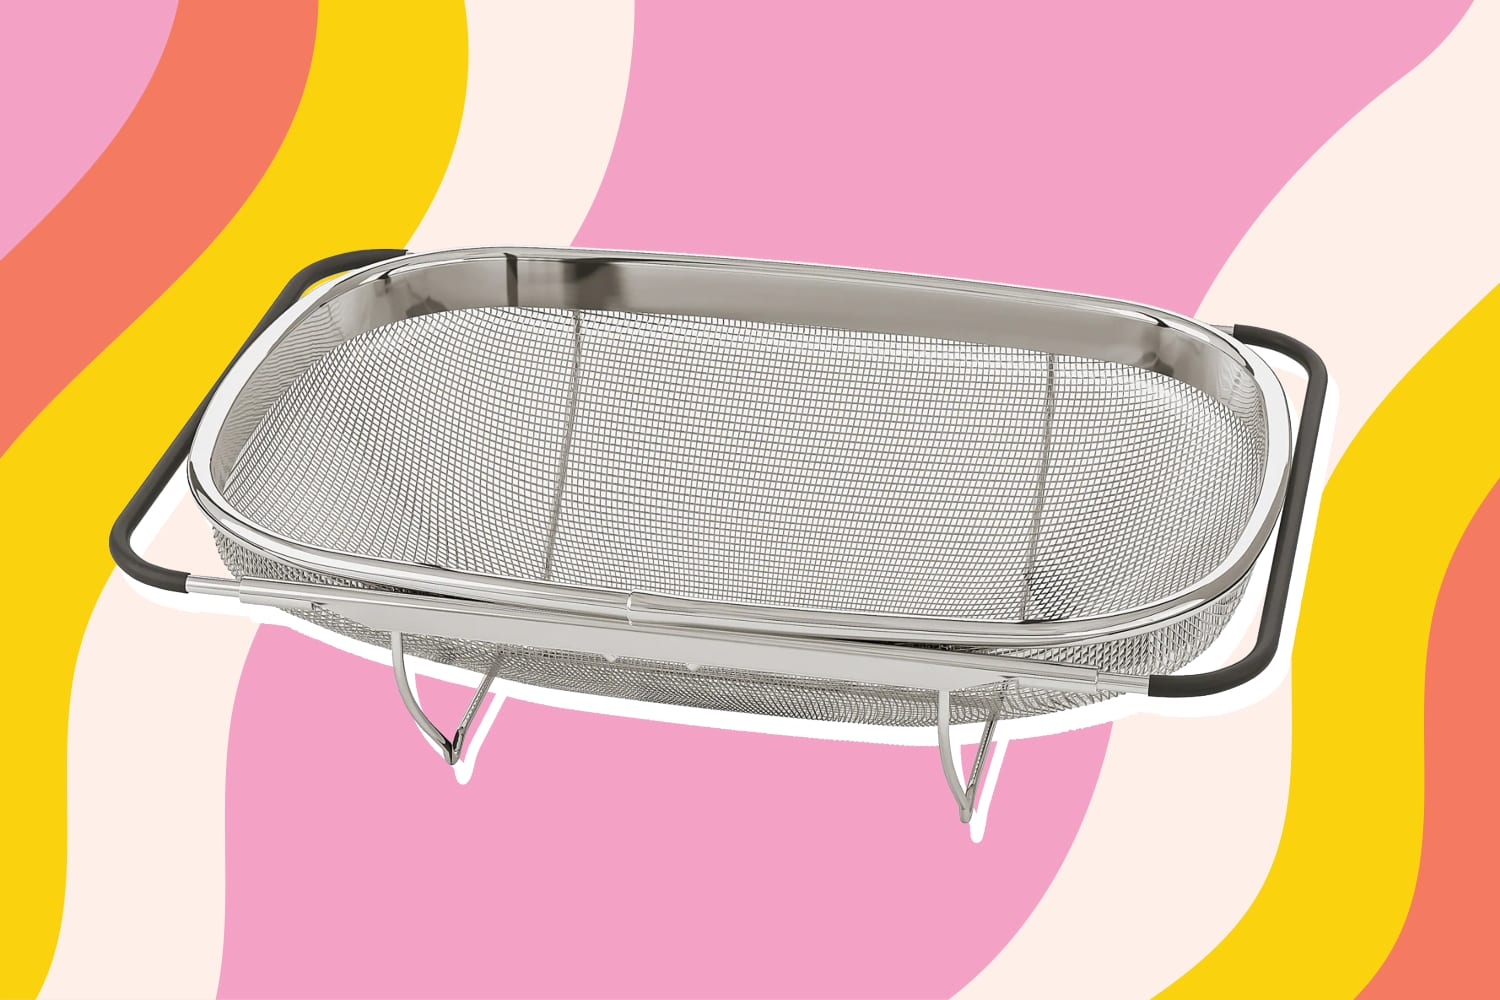 IKEA's $8 IDEALISK Is the Single Best Colander to Ever Hit the Market